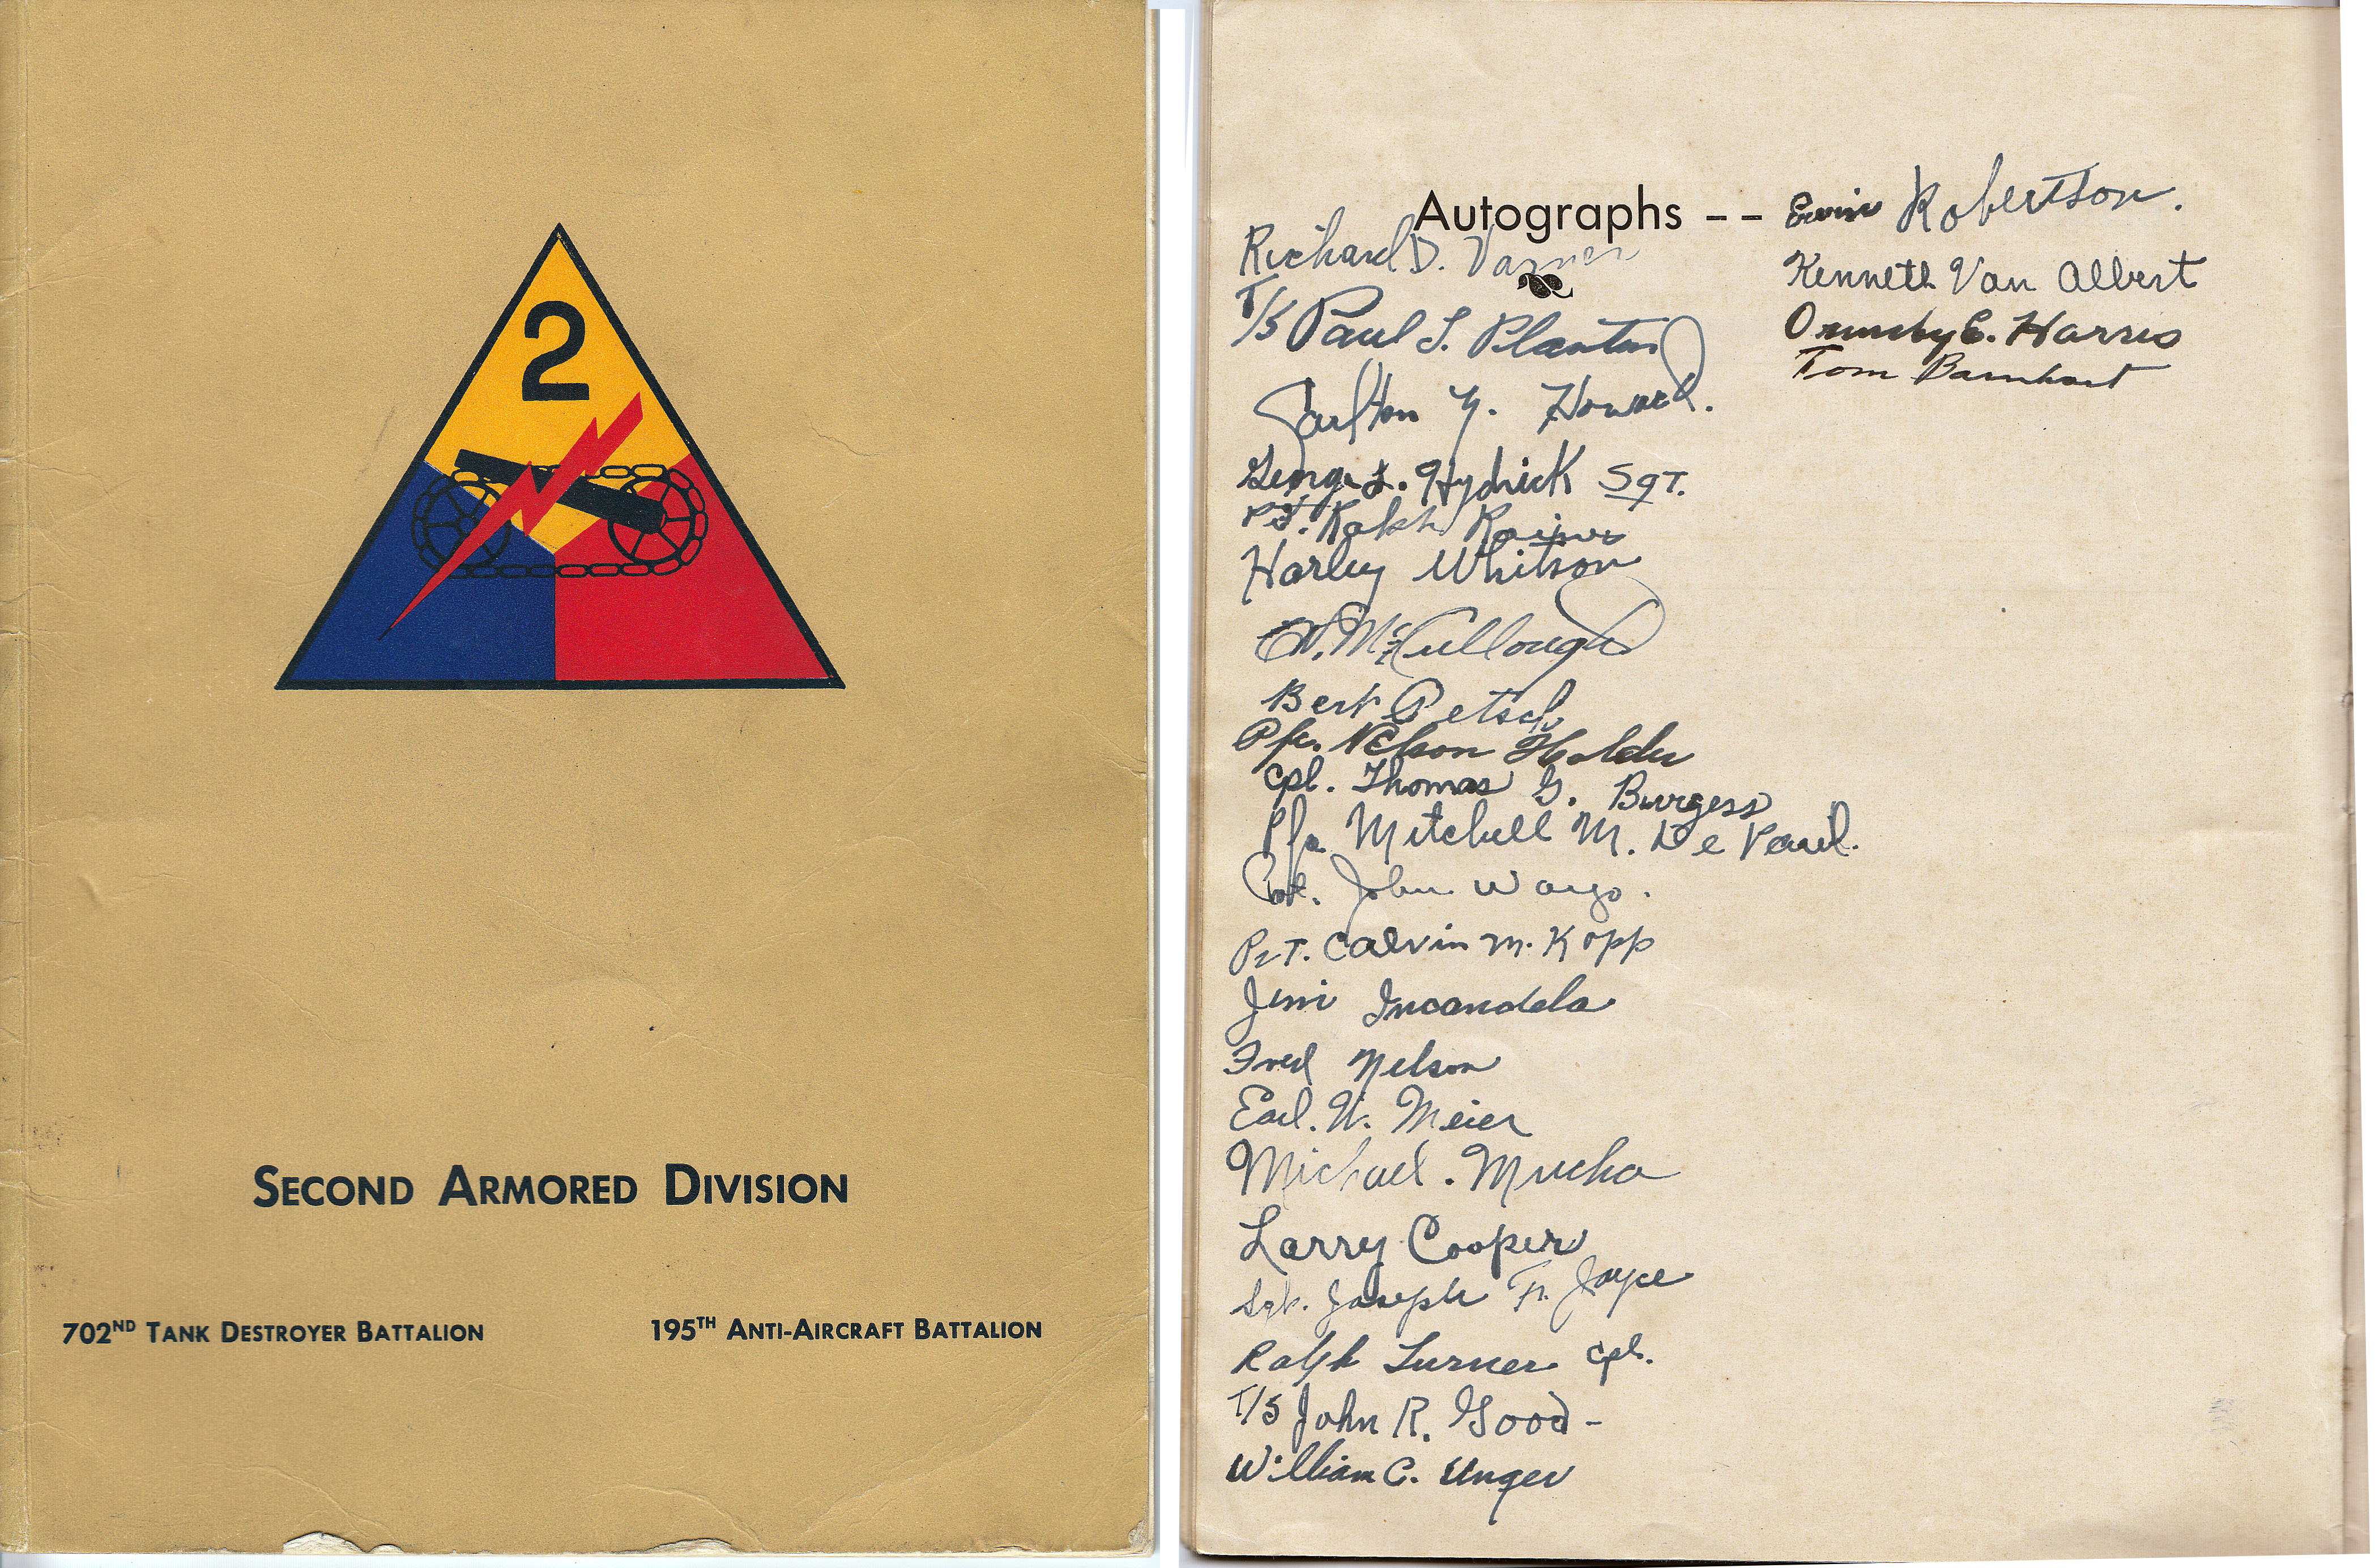 Singed Book cover: 2nd Armored Division 702nd Tank Destroyer Battalion - 195th Anti-aircraft Battalion. Courtesy: M. Hiett)